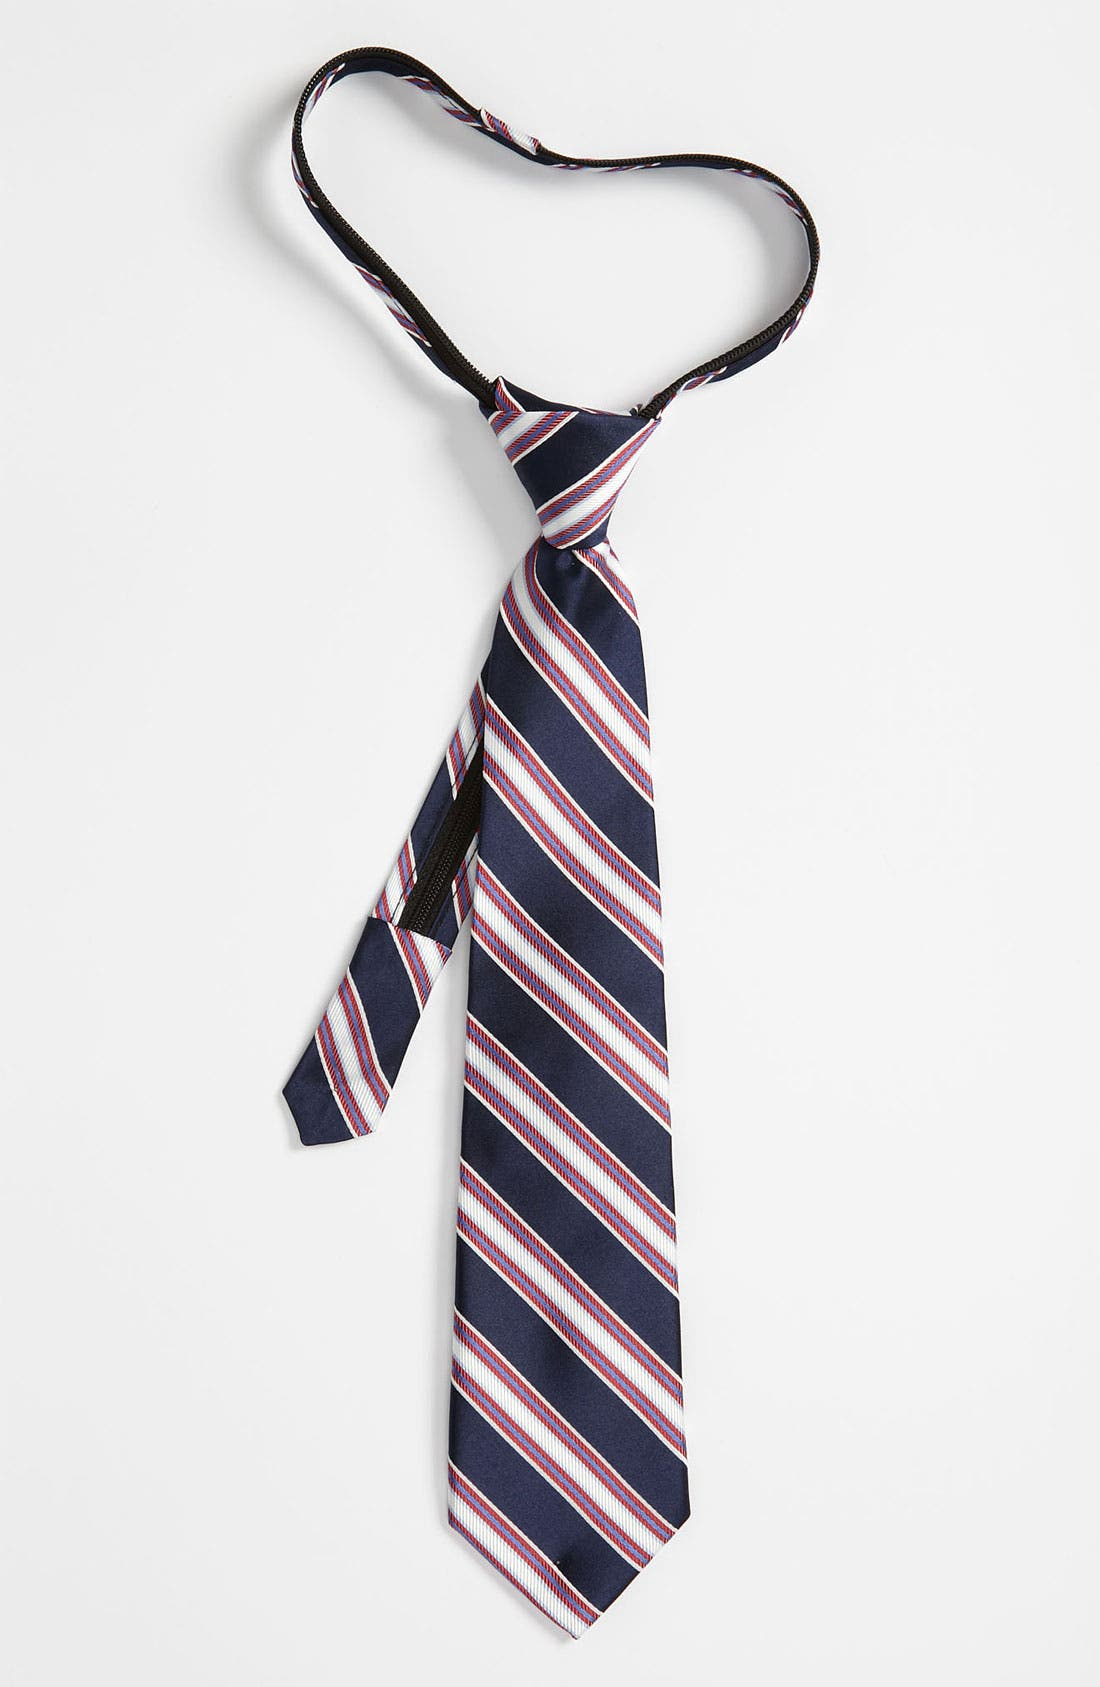 Alternate Image 1 Selected - Nordstrom Zipper Tie (Little Boys)